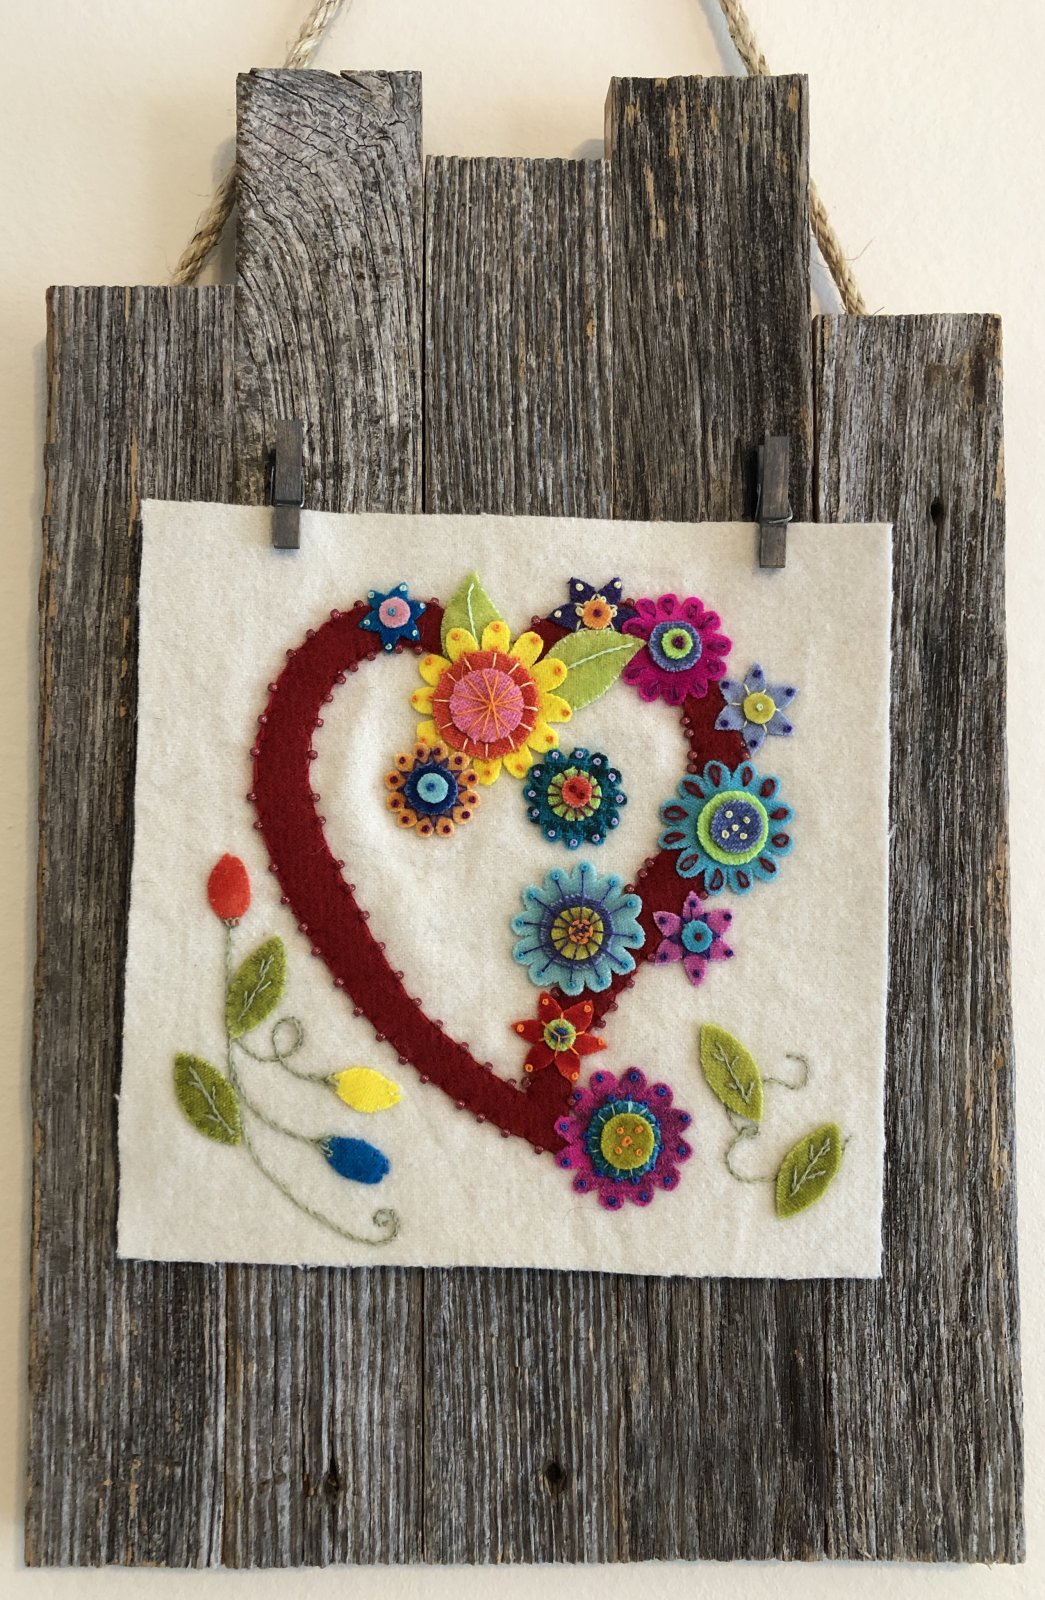 Blooming Heart Wool kit